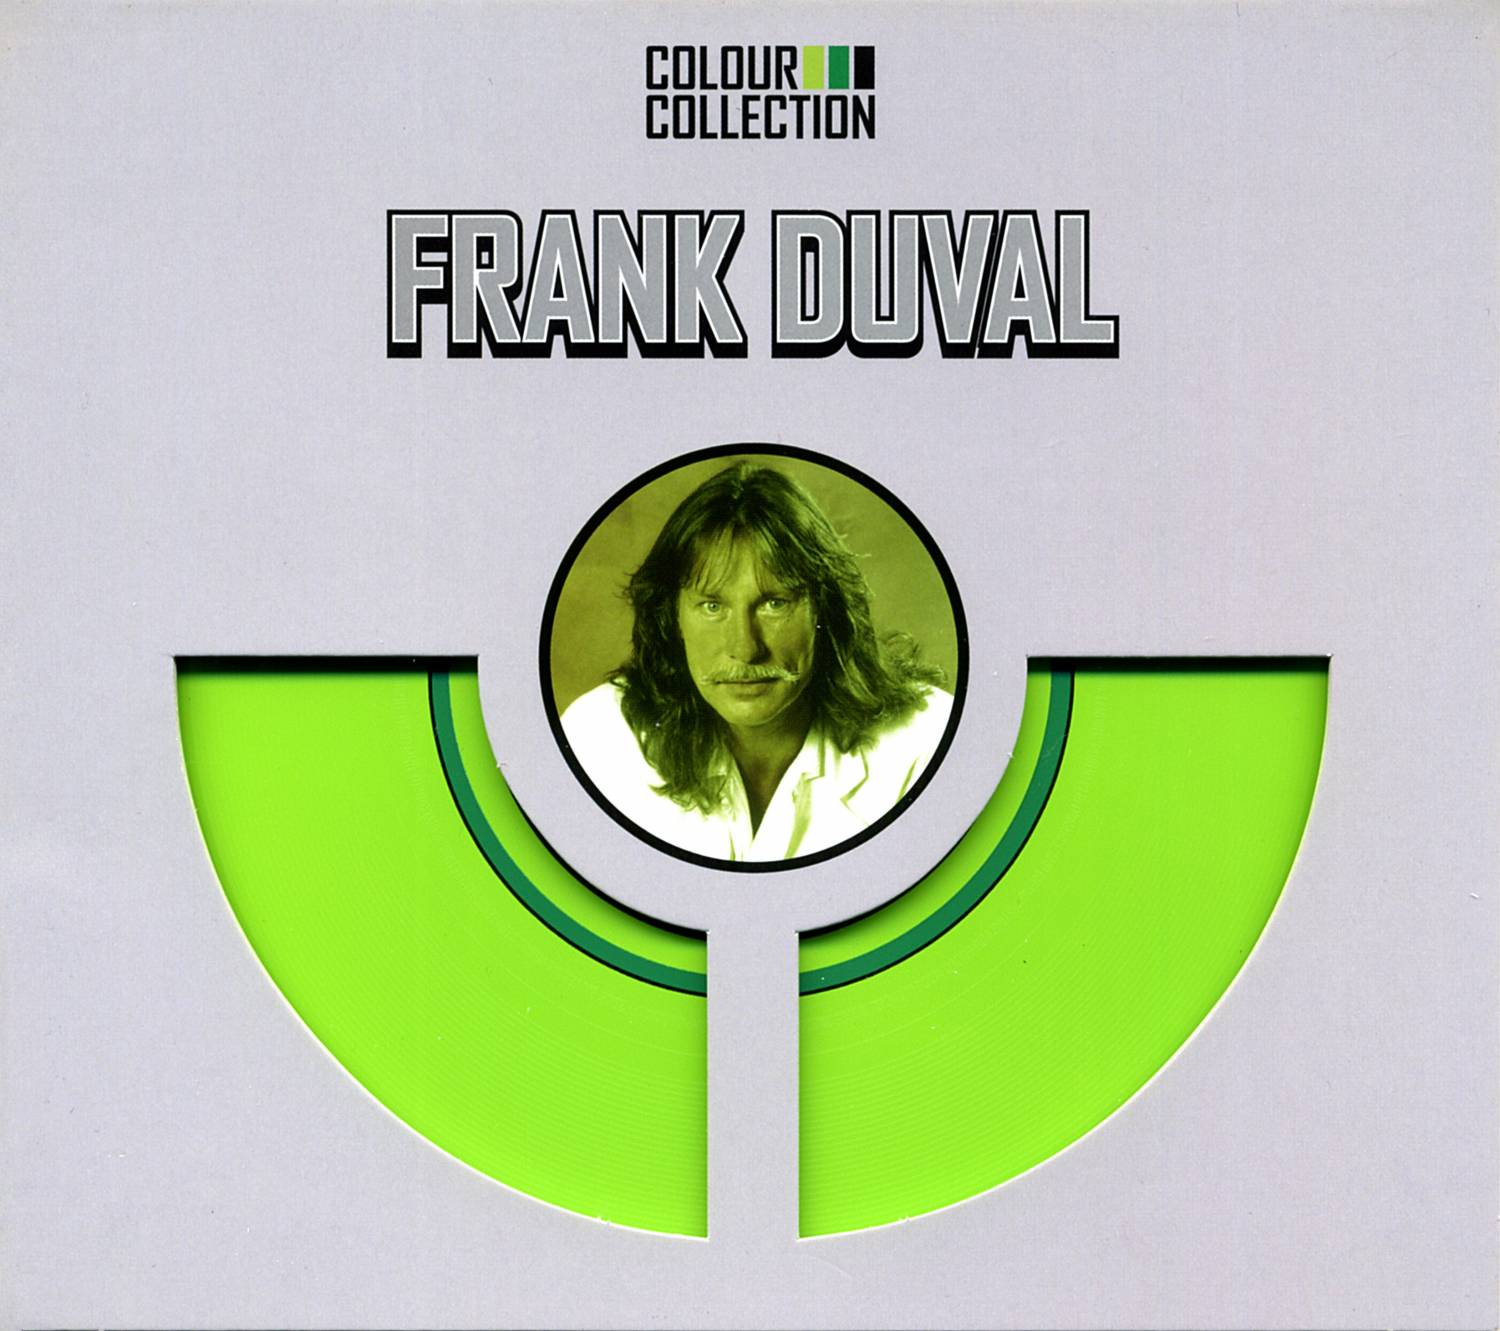 Frank Duval - Colour Collection (2006)